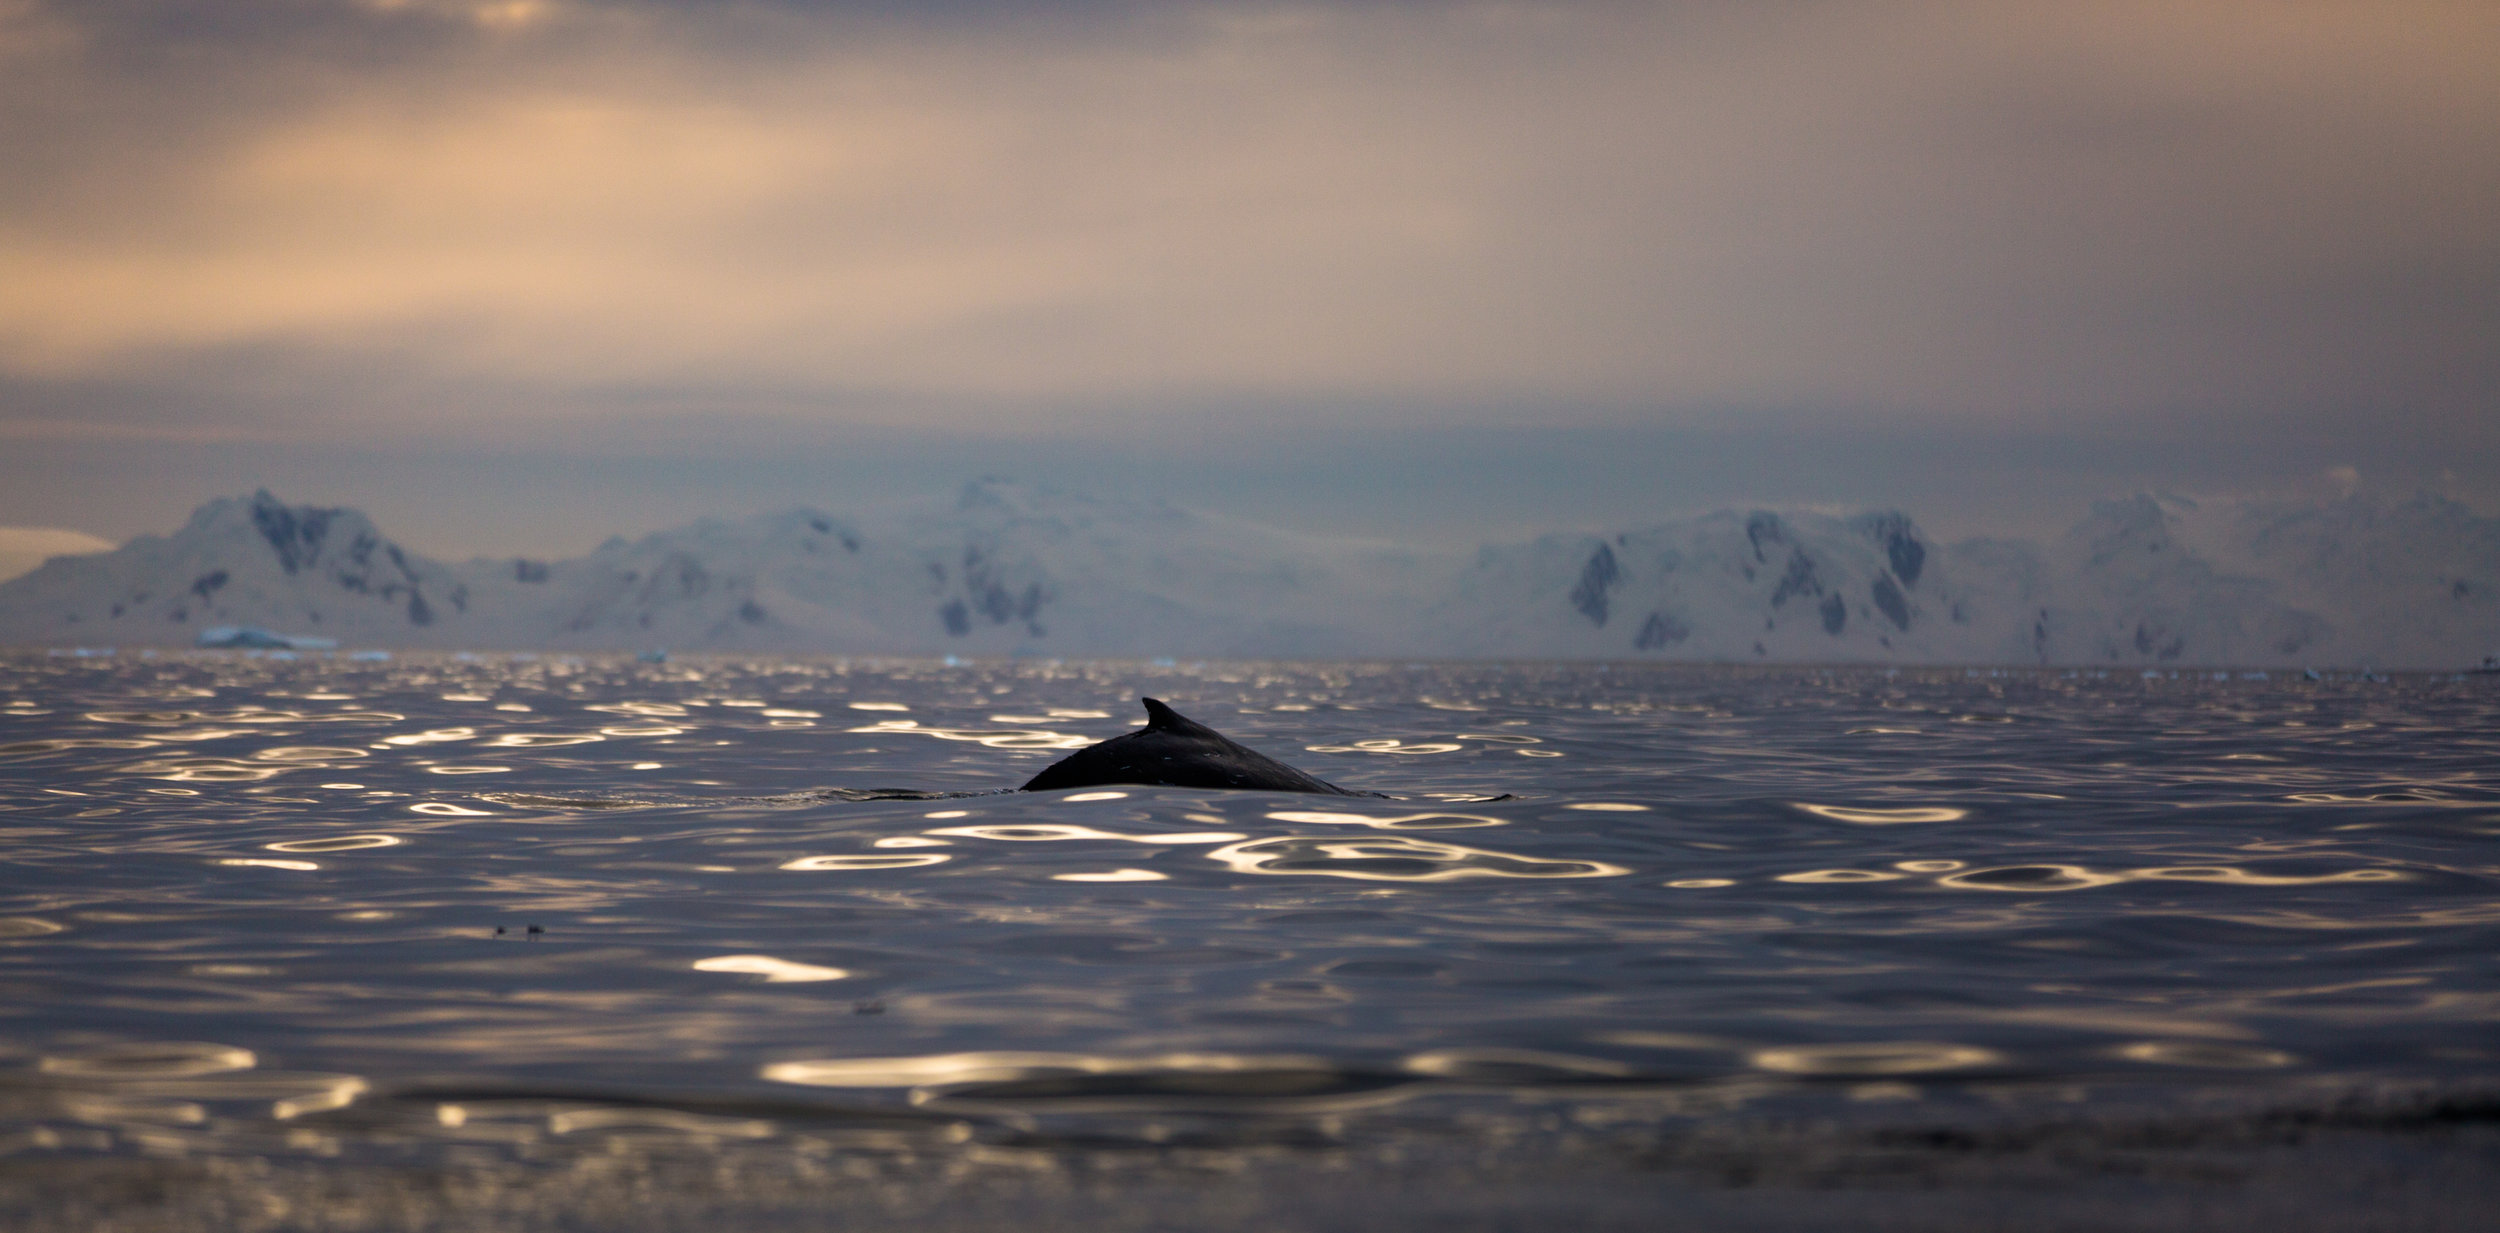 Filming humpback whales in Antarctica on board One Ocean Expeditions a few months earlier. See 'The Friendly Whale' blog article to learn more. (Humpback whales are much more playful than fin whales).